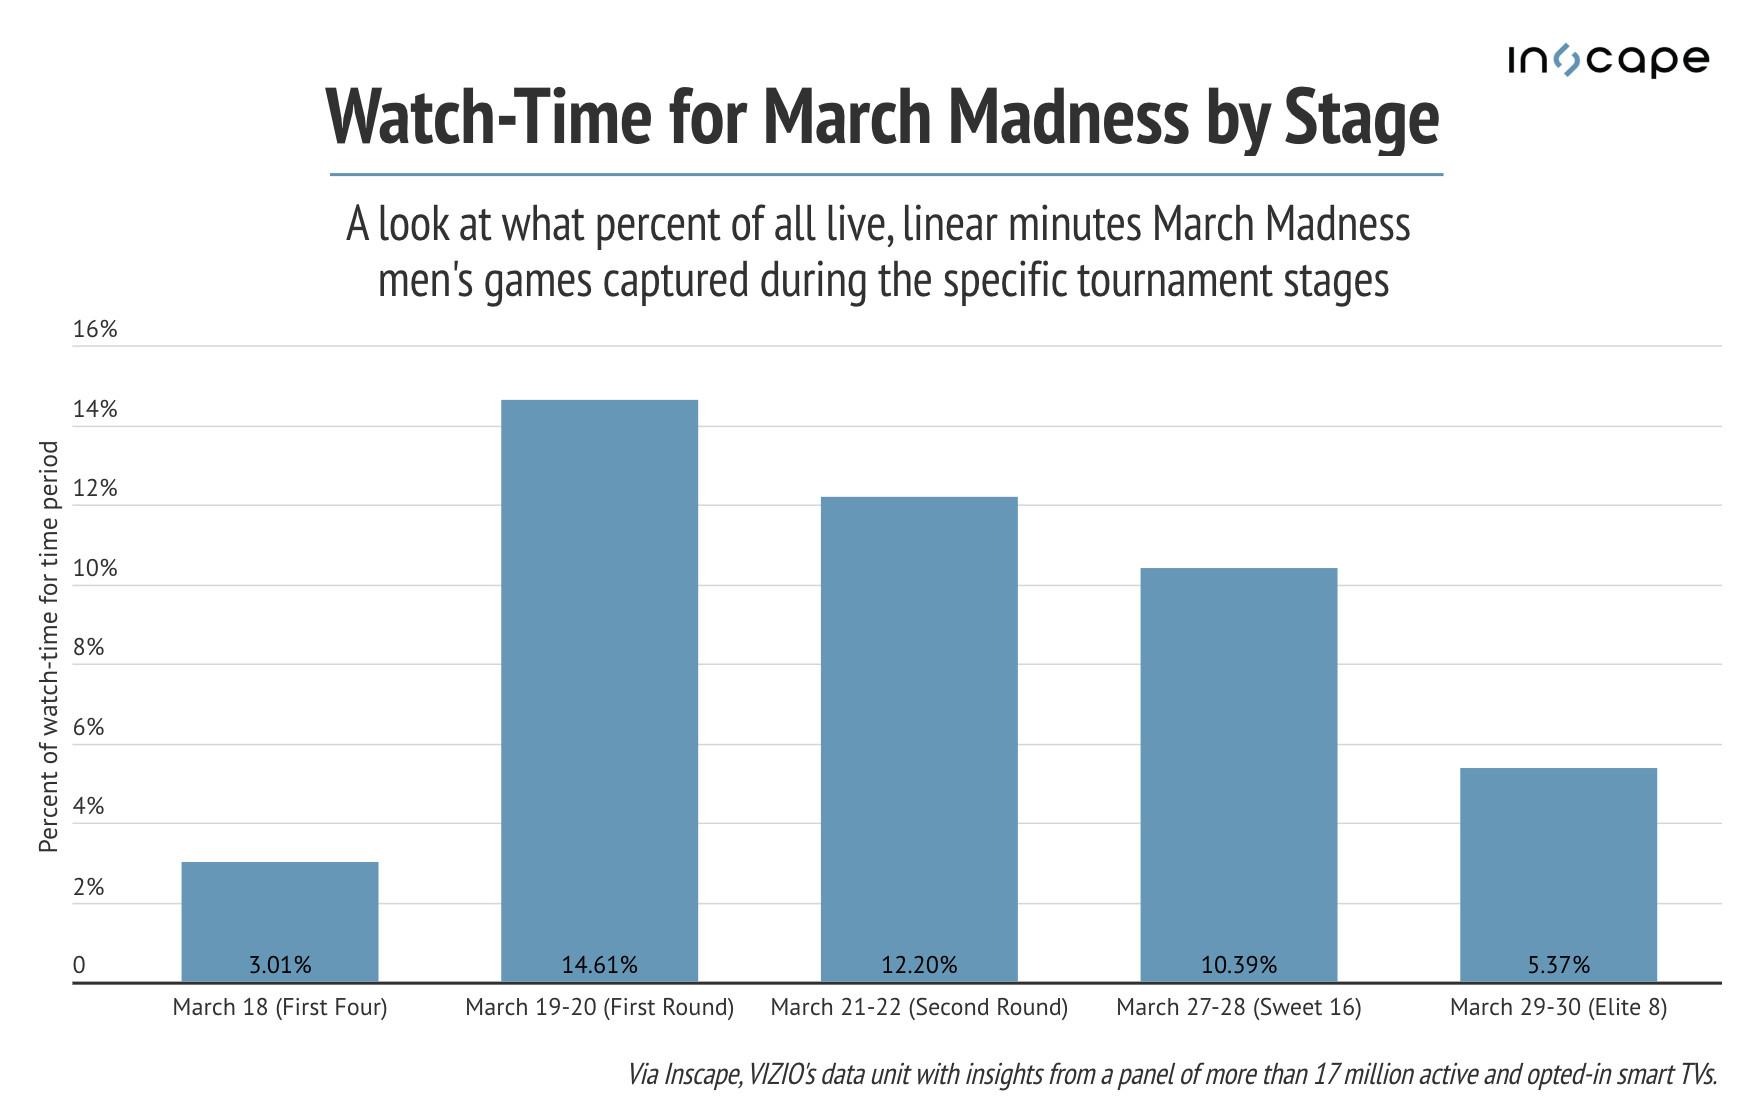 March Madness watch time